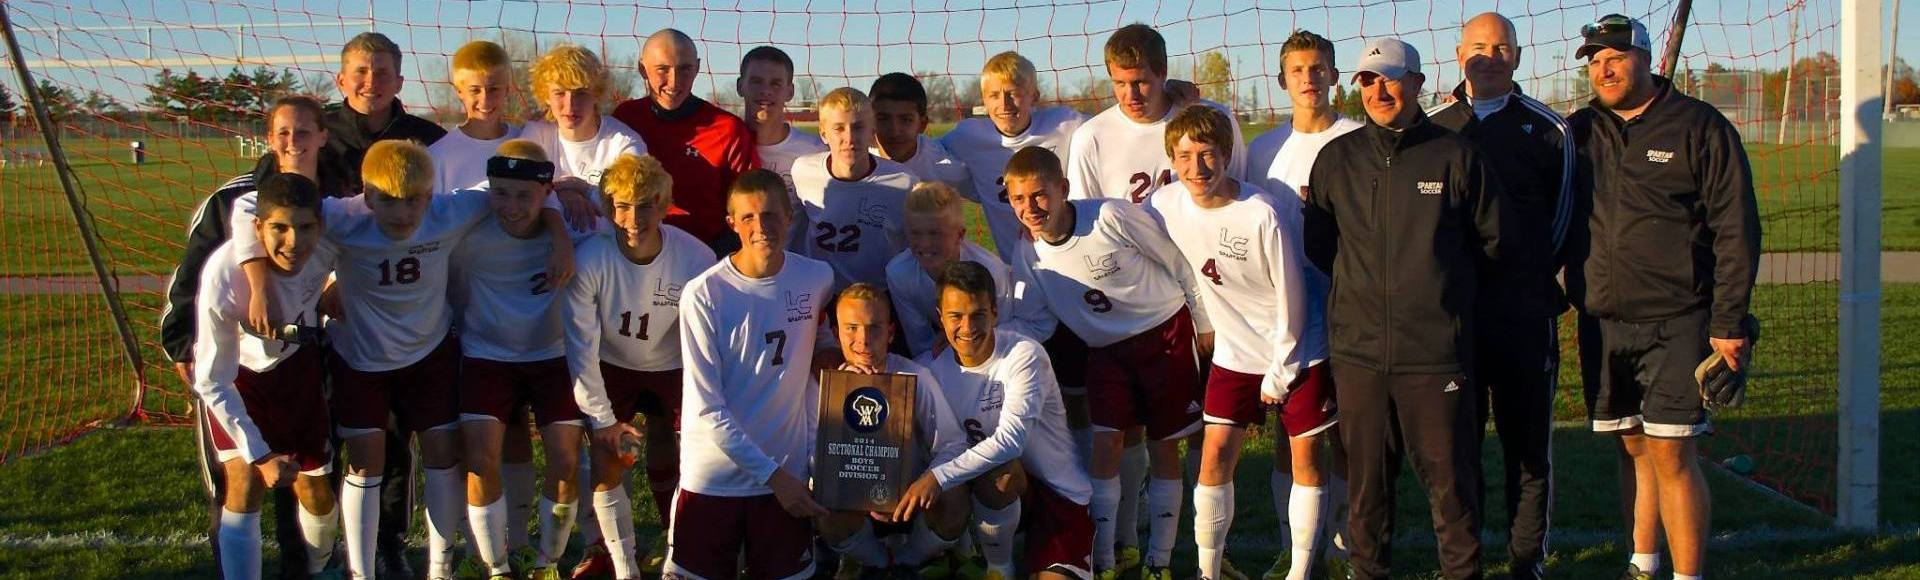 Luxemburg-Casco Spartans defeat Notre Dame Academy 1-0 to earn their first Sectional Championship and berth at state.